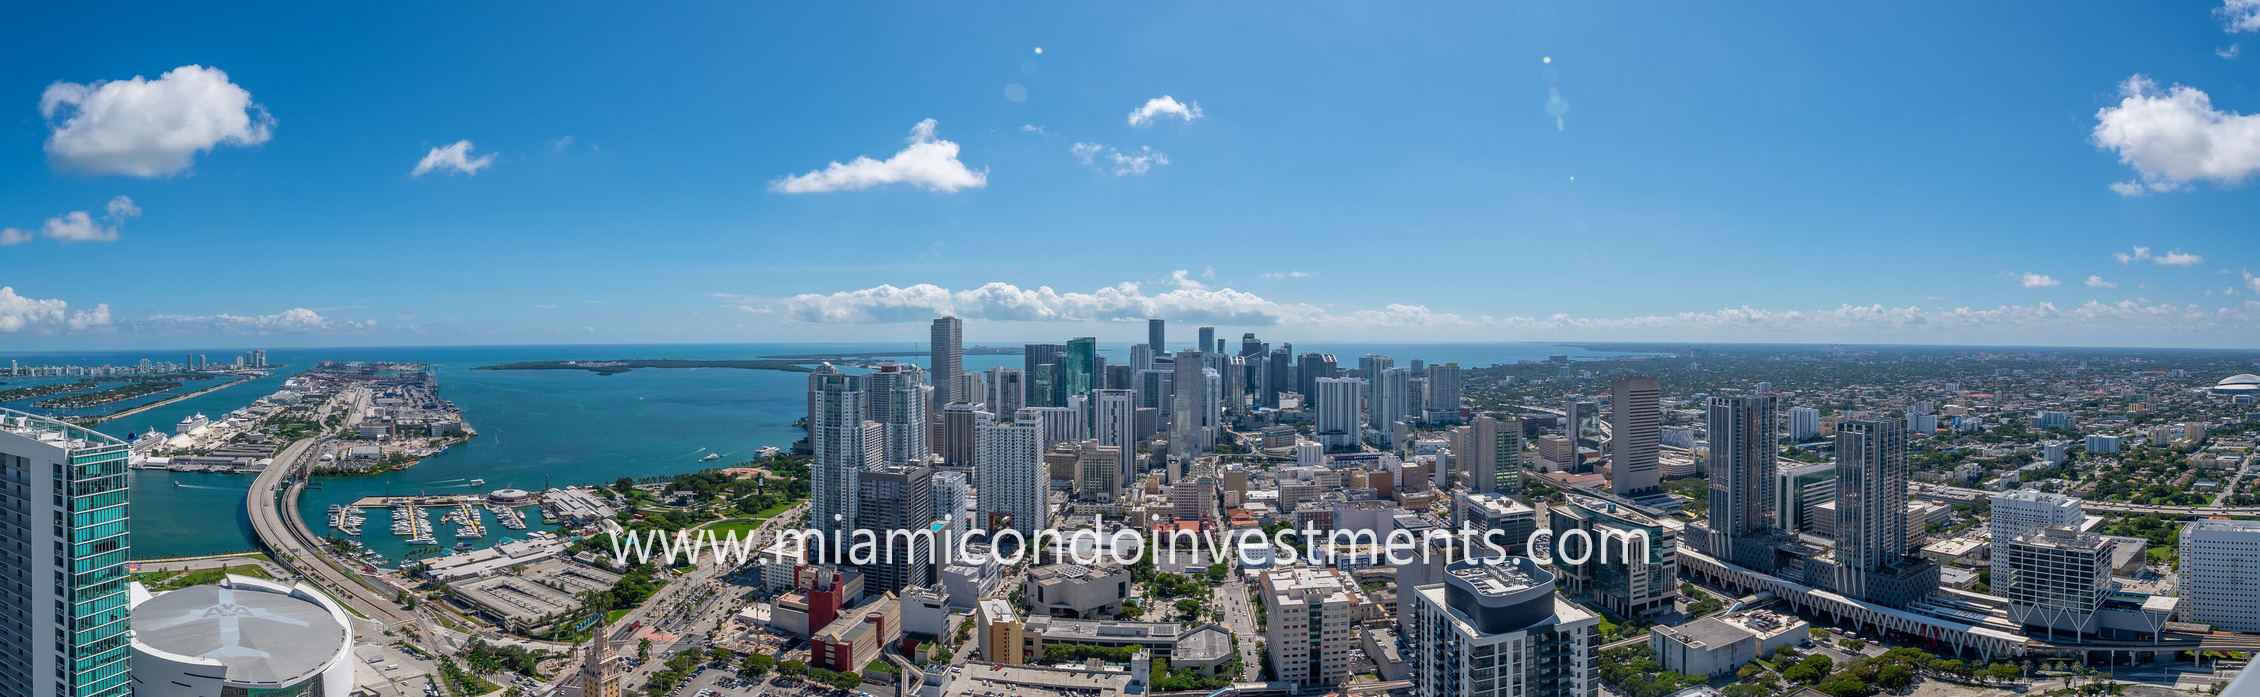 paroramic views from atop Paramount Miami Worldcenter